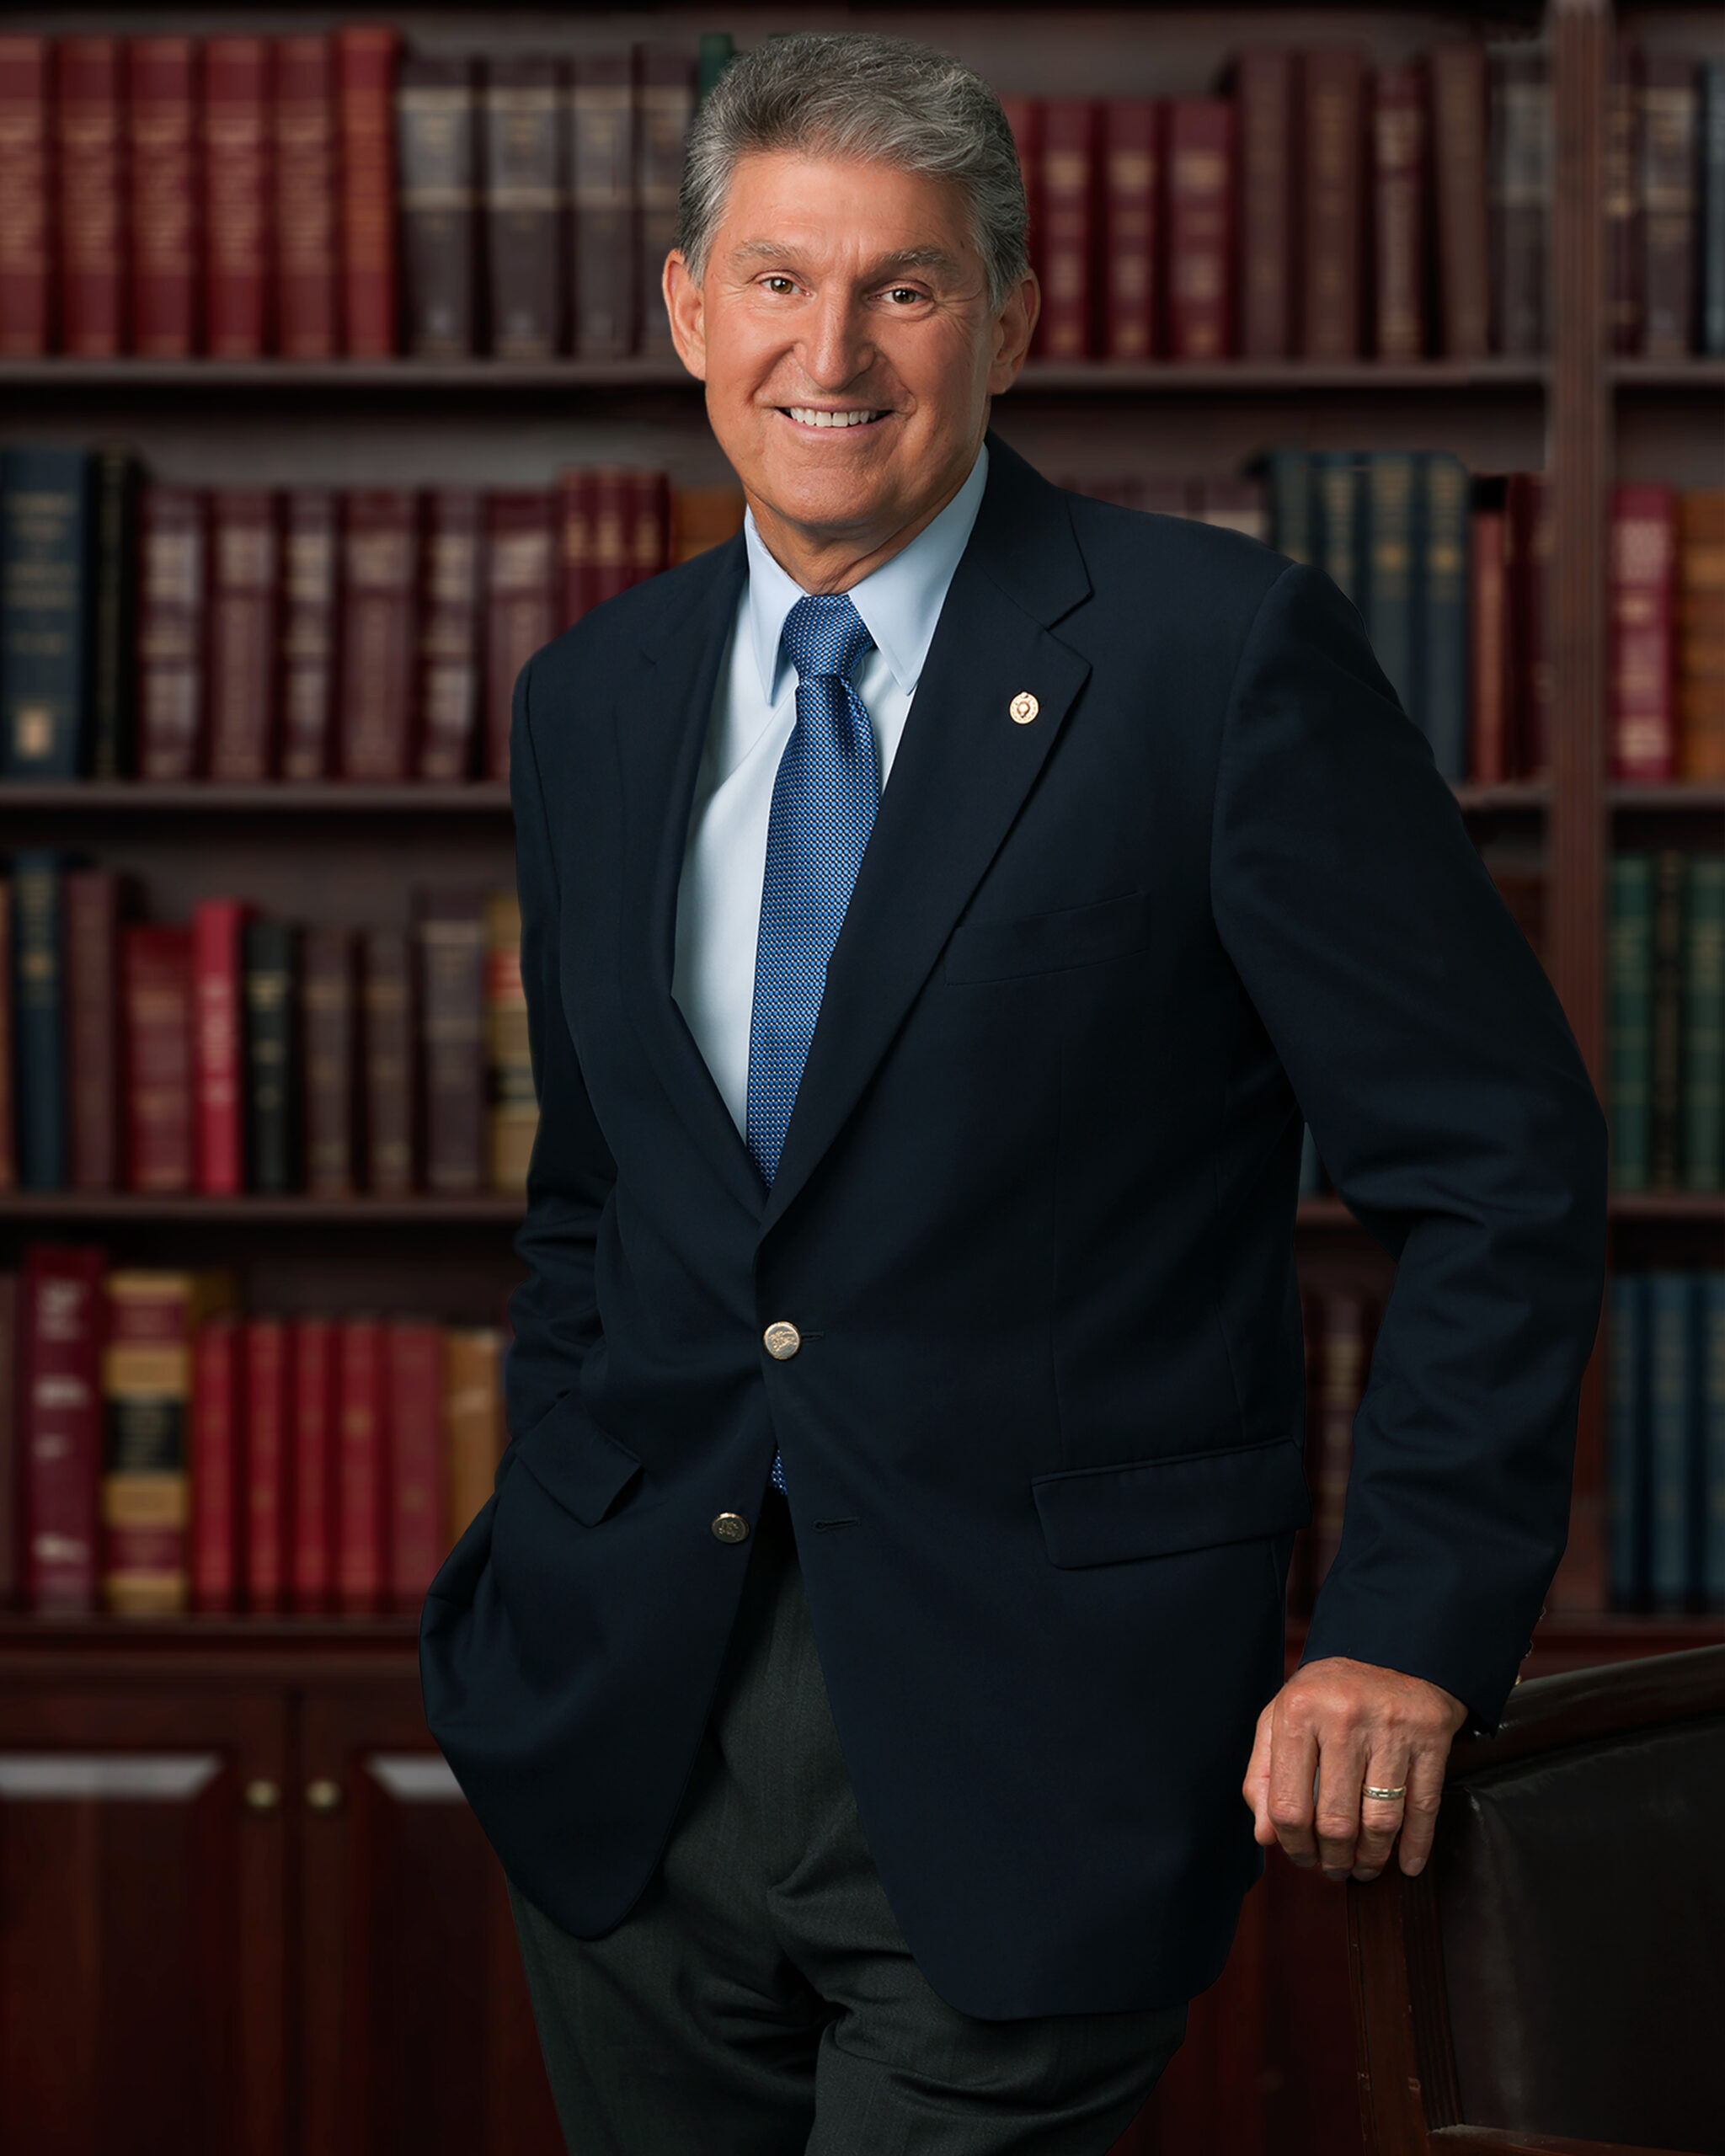 Joe Manchin, III Phone Number, Email, Fan Mail, Address, Biography, Agent, Manager, Mailing address, Contact Info, Mailing Addresses